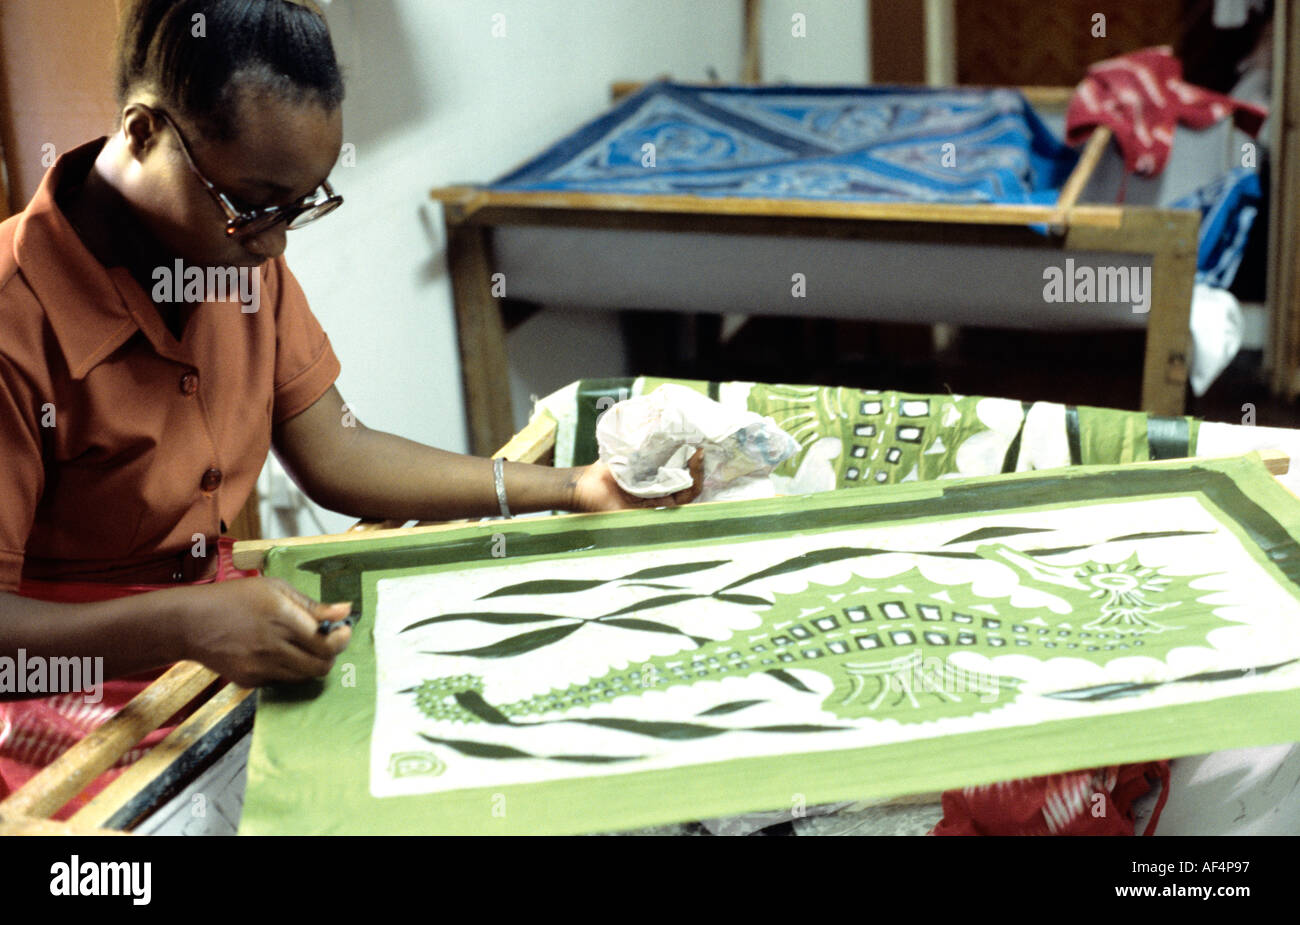 Local man works on batik of green seahorse in a workshop on St Kitts The Caribbean West Indies - Stock Image